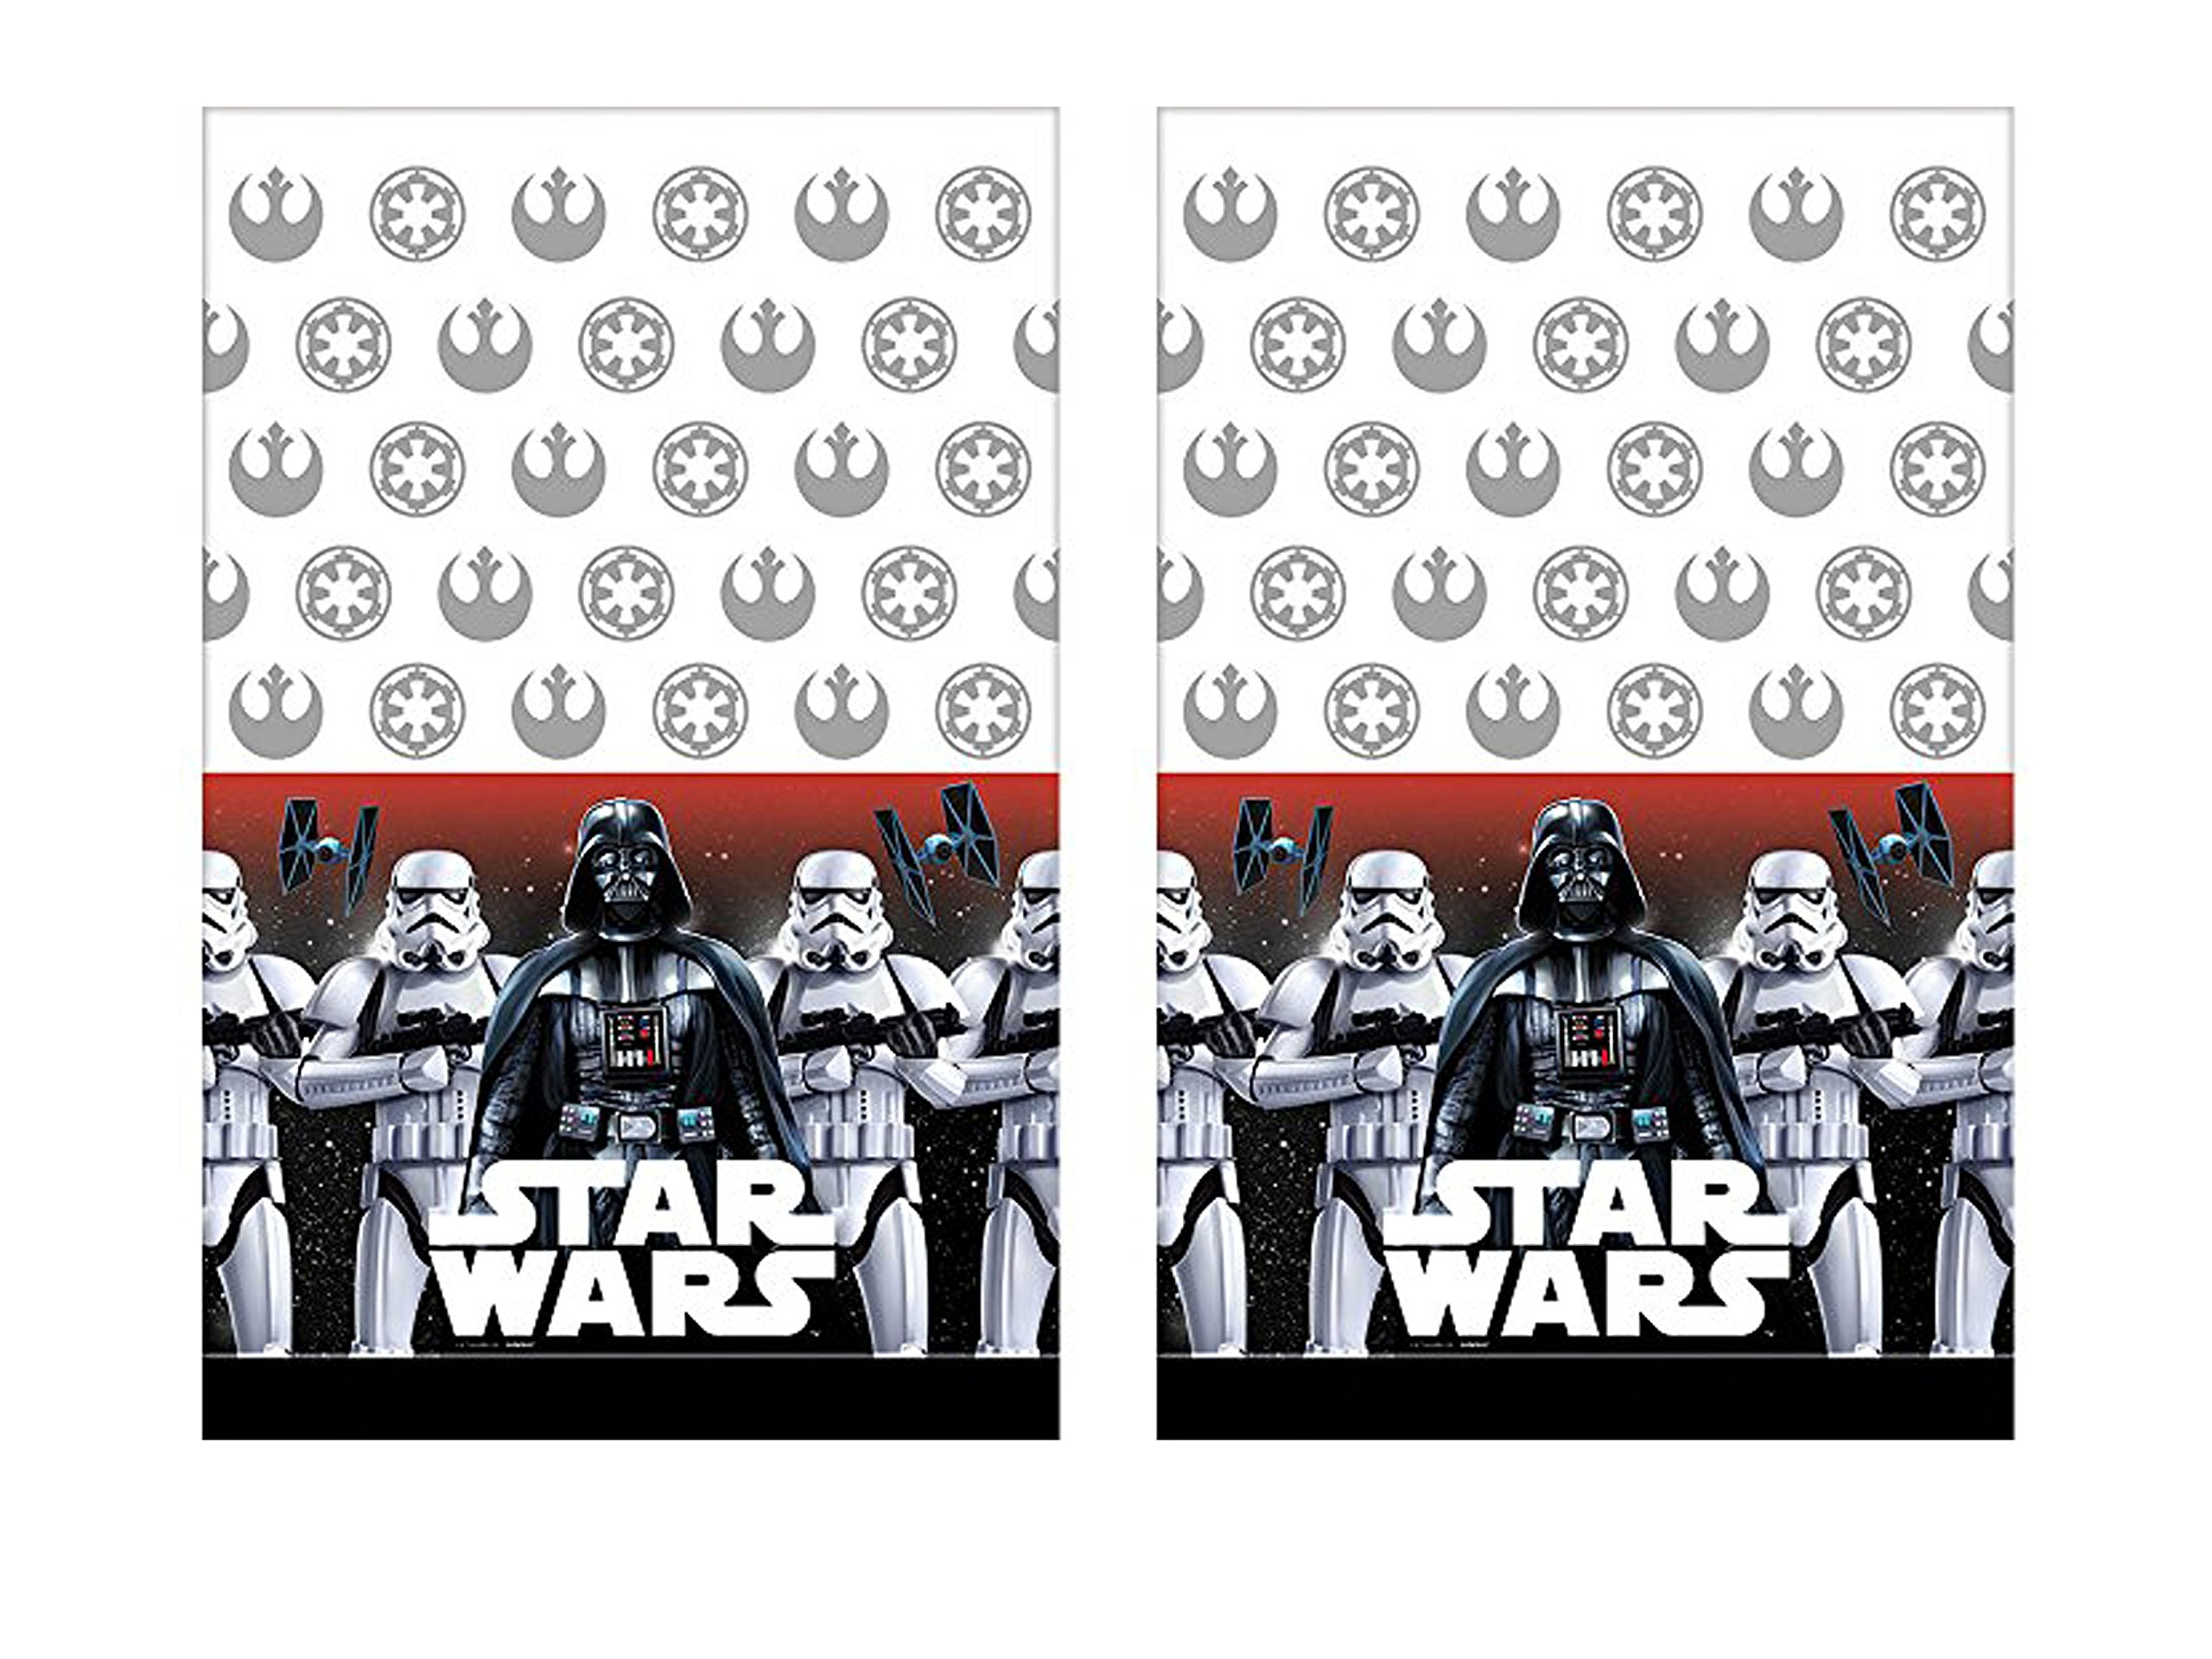 Set of 2 American Greetings 54in x 96in Plastic Star Wars Table Cover bundled by Maven Gifts